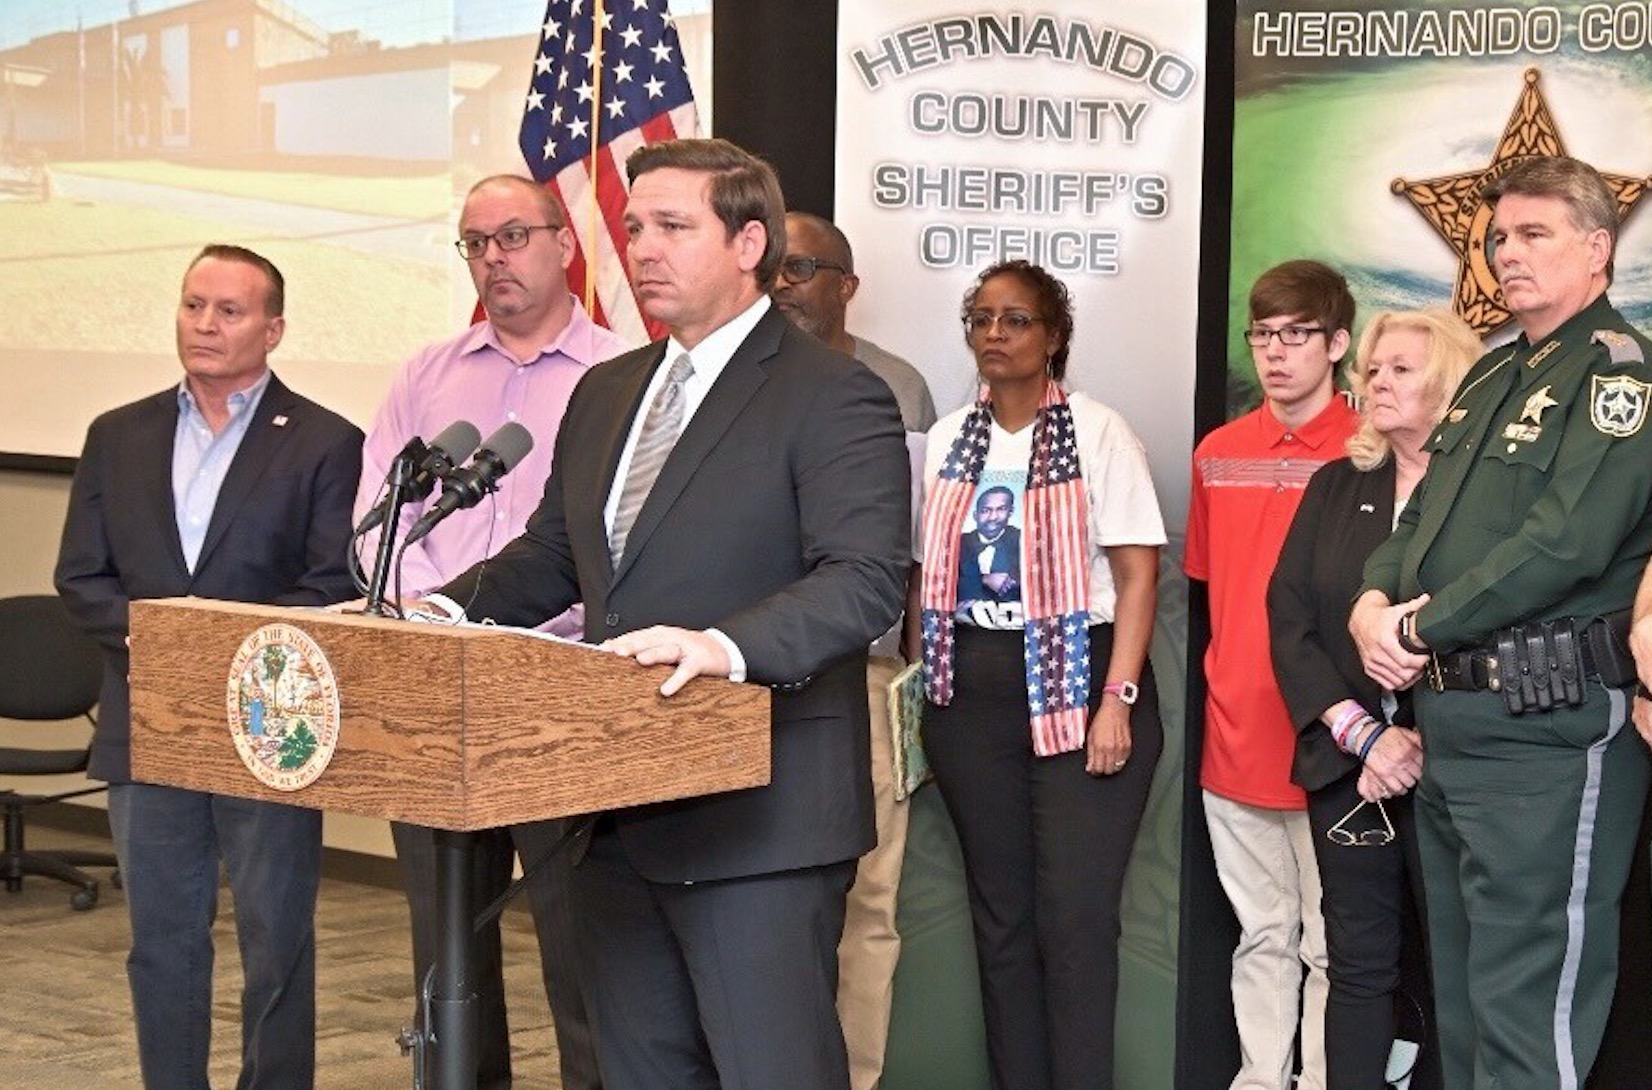 DeSantis says he'll sign anti-sanctuary cities bill